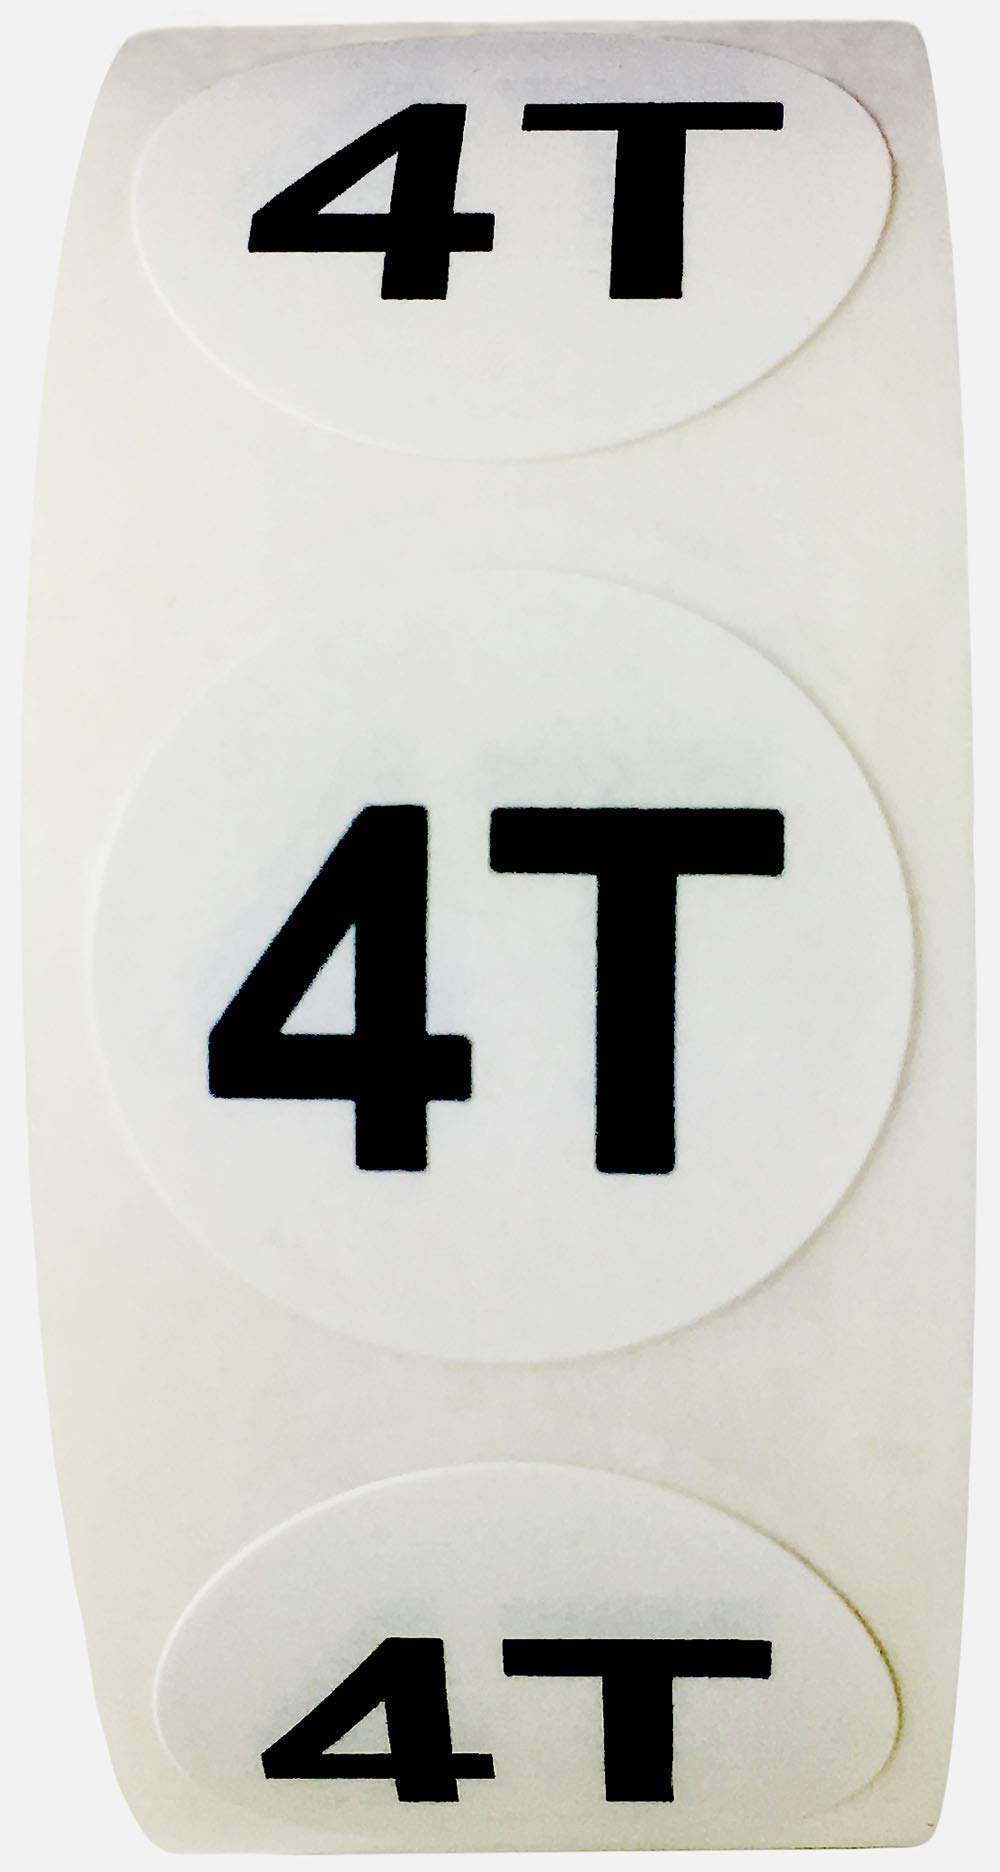 White Circle 4T Clothing Size Stickers for Retail Apparel 0.75 Inch 500 Total Adhesive Labels